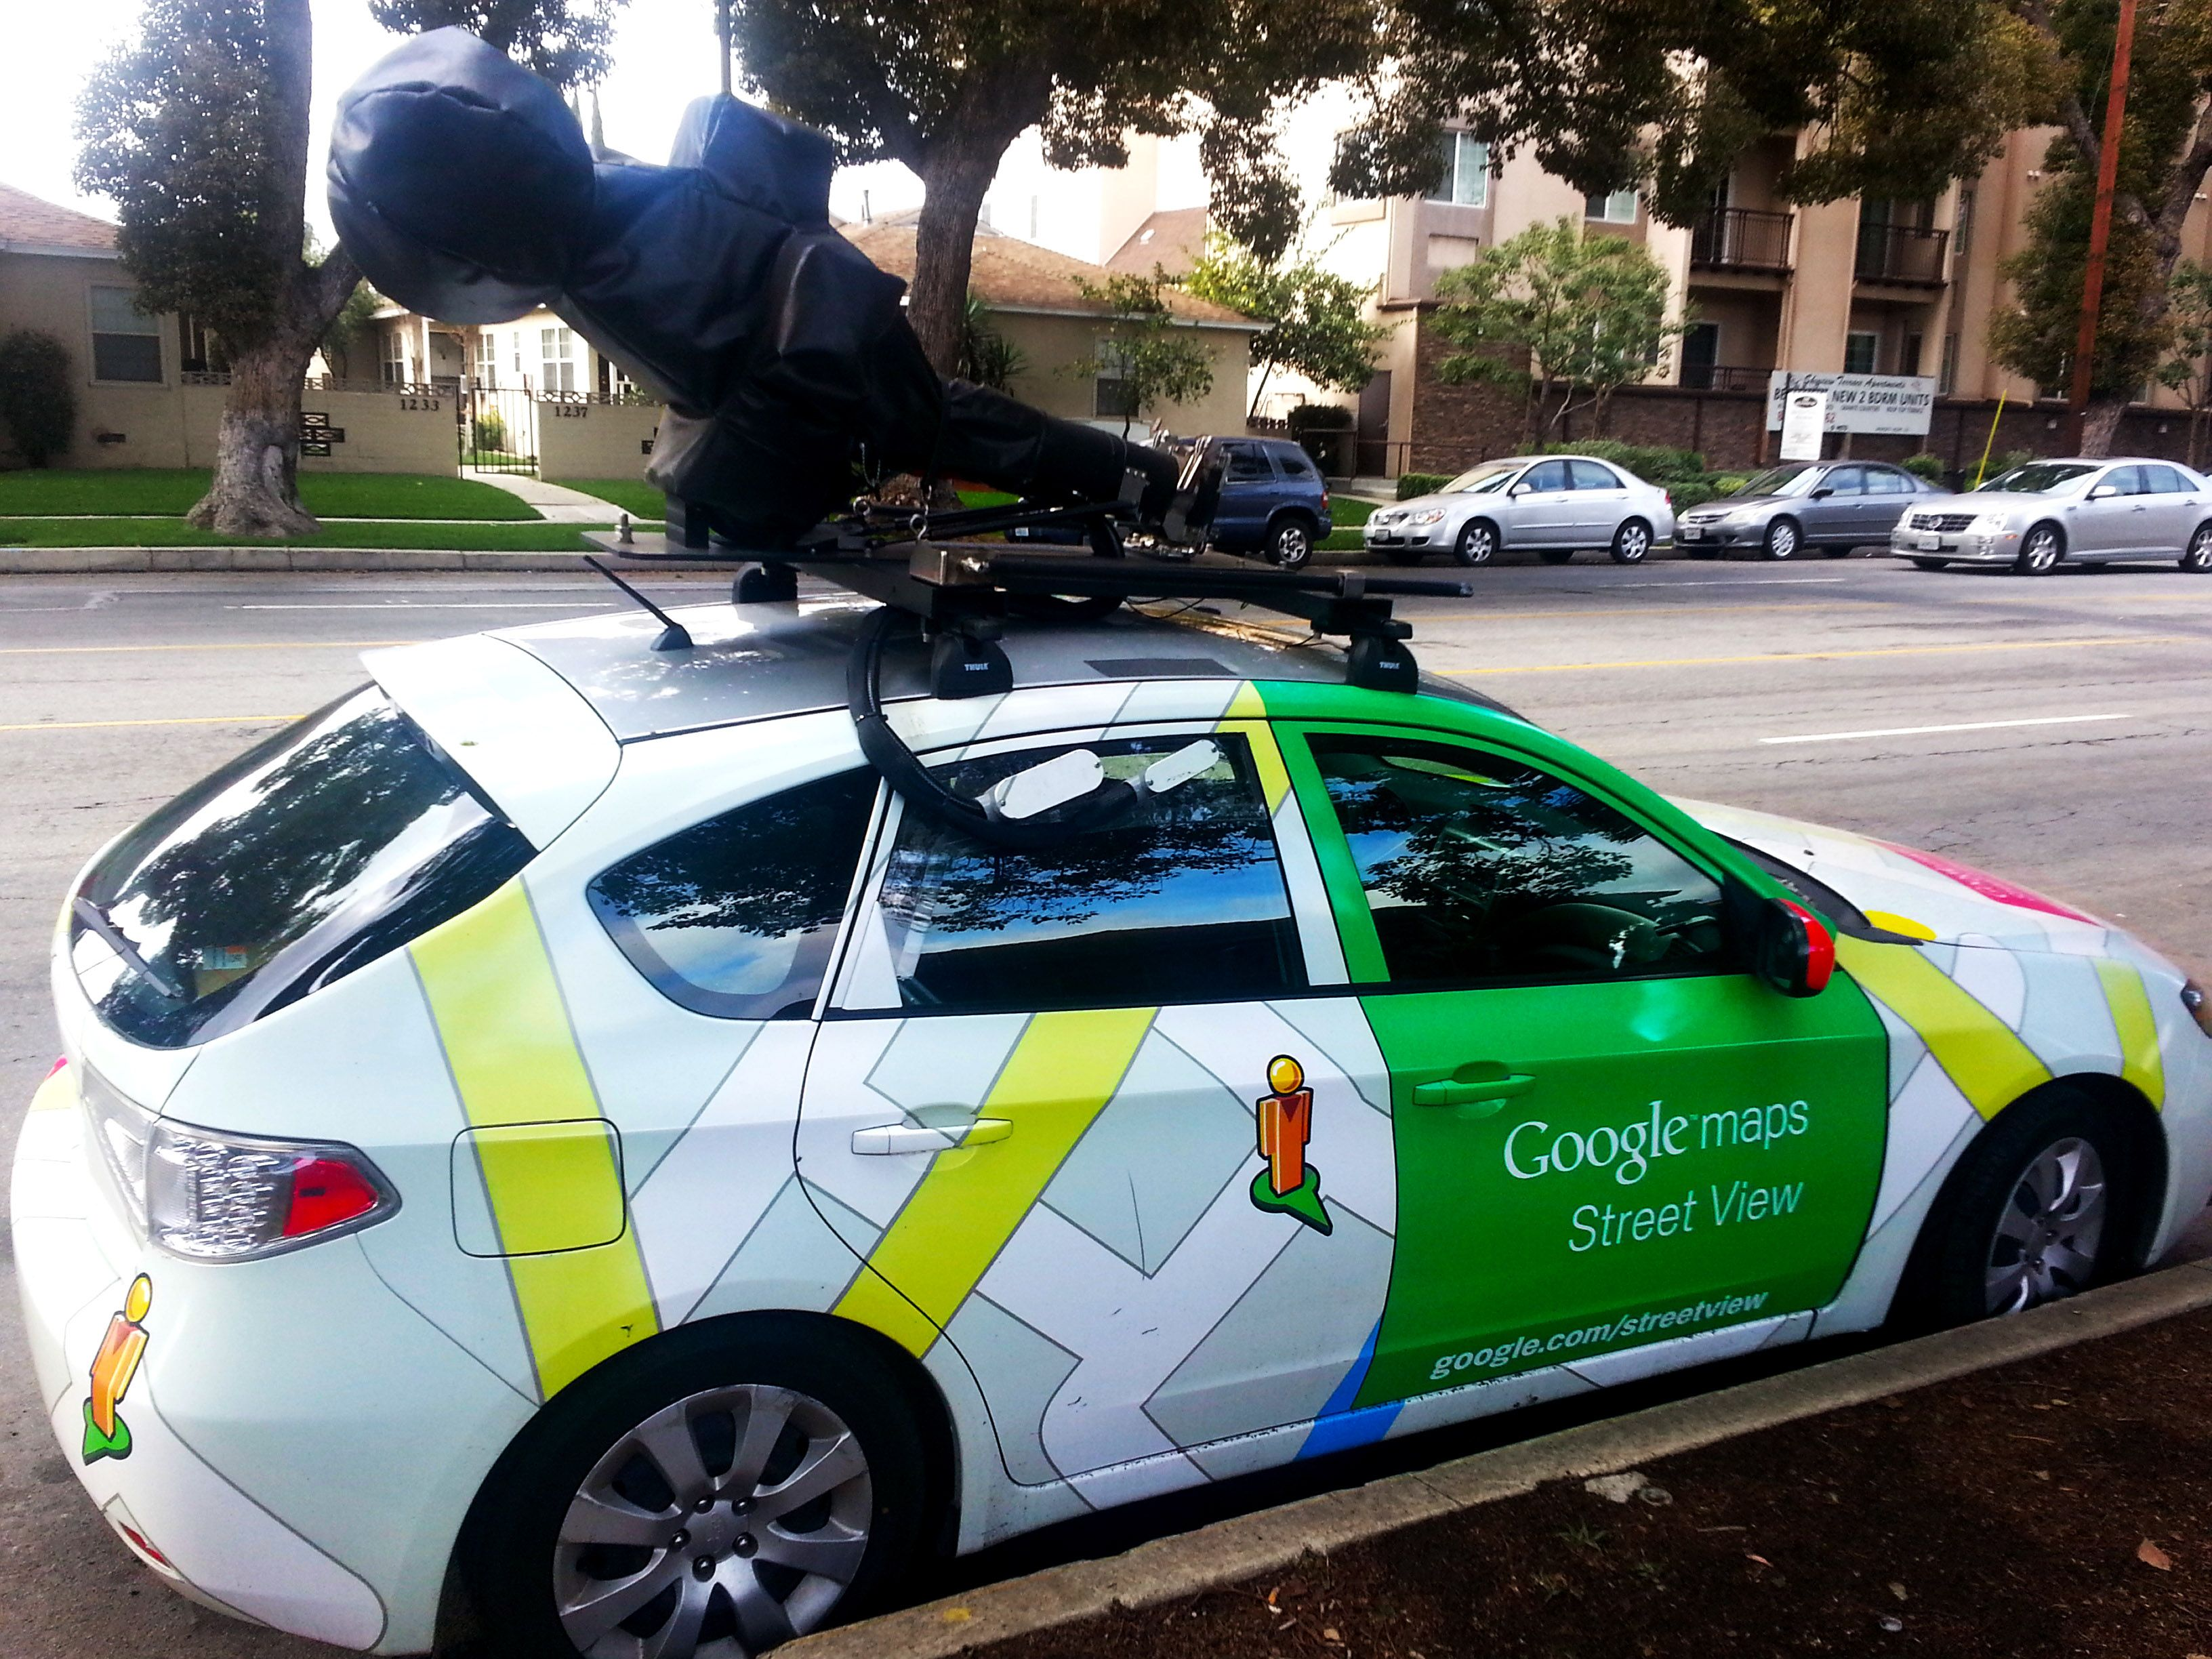 Camera Car @google @Google Maps #streetview @Google Street ... on hot tub fastest car, google art project, google street view in europe, google earth, funny broken down car, google logo girl, google street view in oceania, funny google street car, brand perceptual map car, aspen movie map, google street view privacy concerns, google street view in latin america, funny mouse car, web mapping, map google earth car, google map boat, google search, police trap car, google street view in africa, google street view in asia, competition of google street view, google street view car, google street view in the united states,